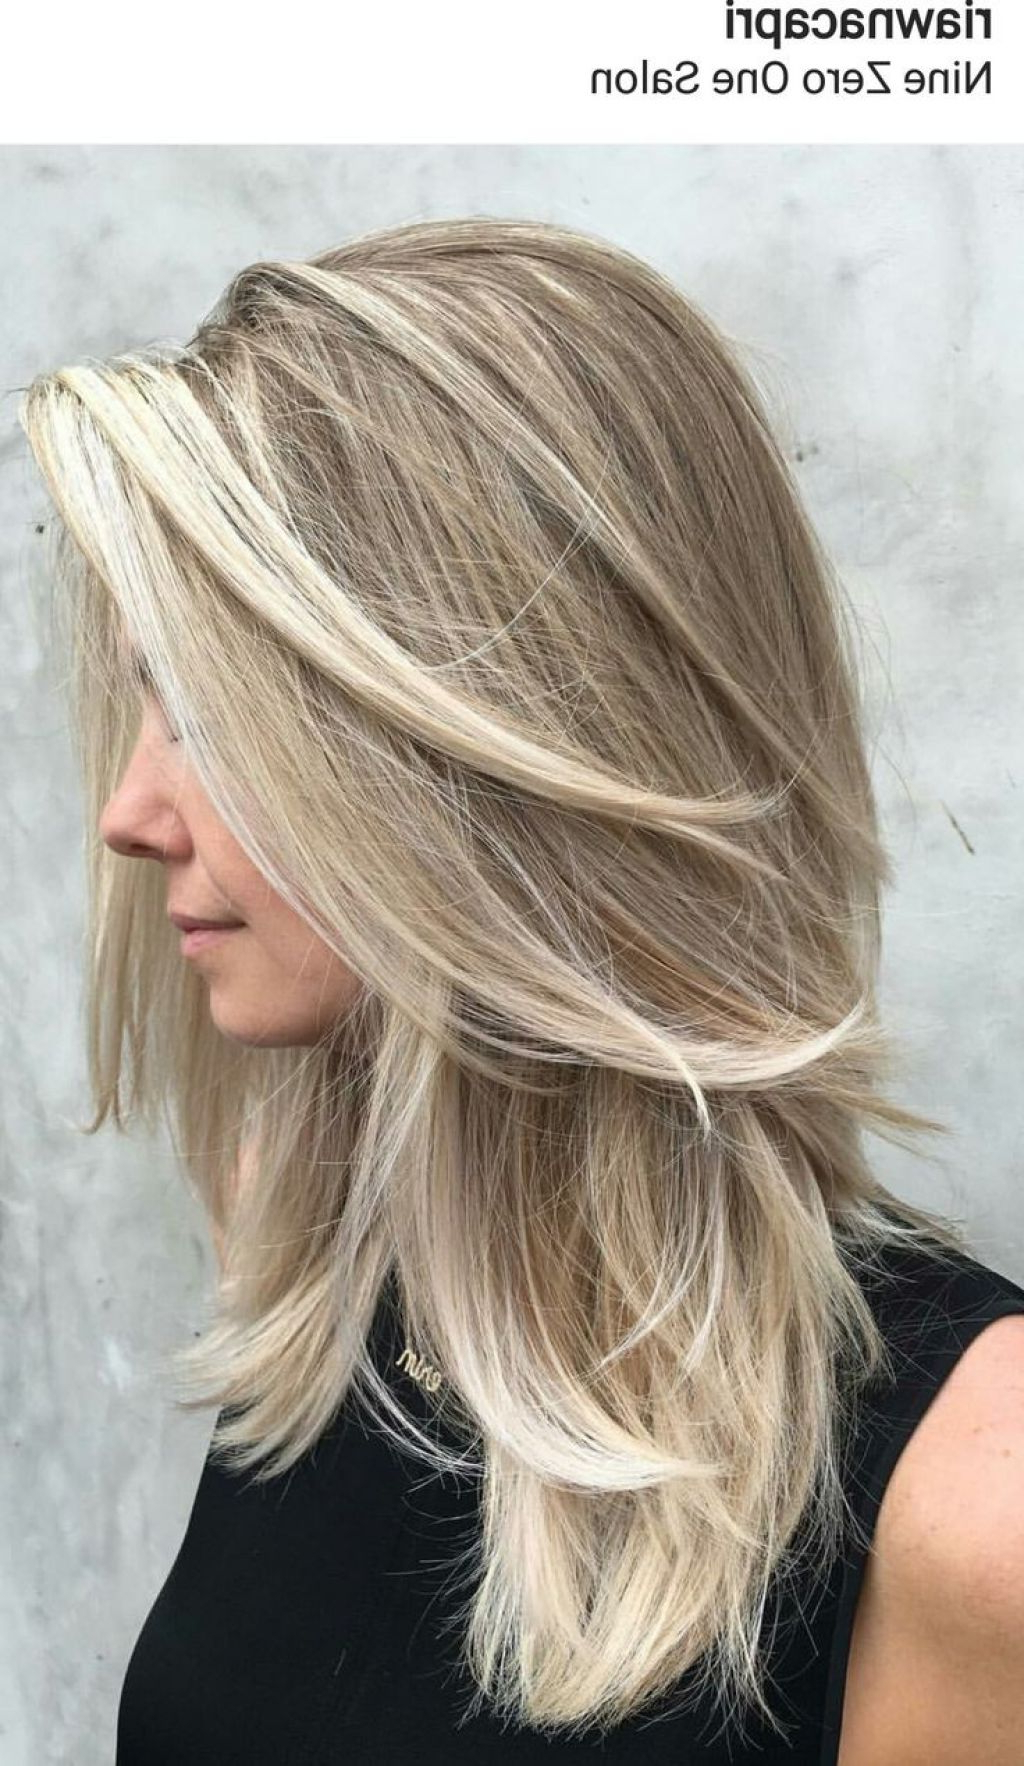 Medium Hairstyle : Layered Hairstyles For Medium Length Hair With Throughout Recent Medium Hairstyles With Side Swept Bangs And Layers (View 9 of 20)